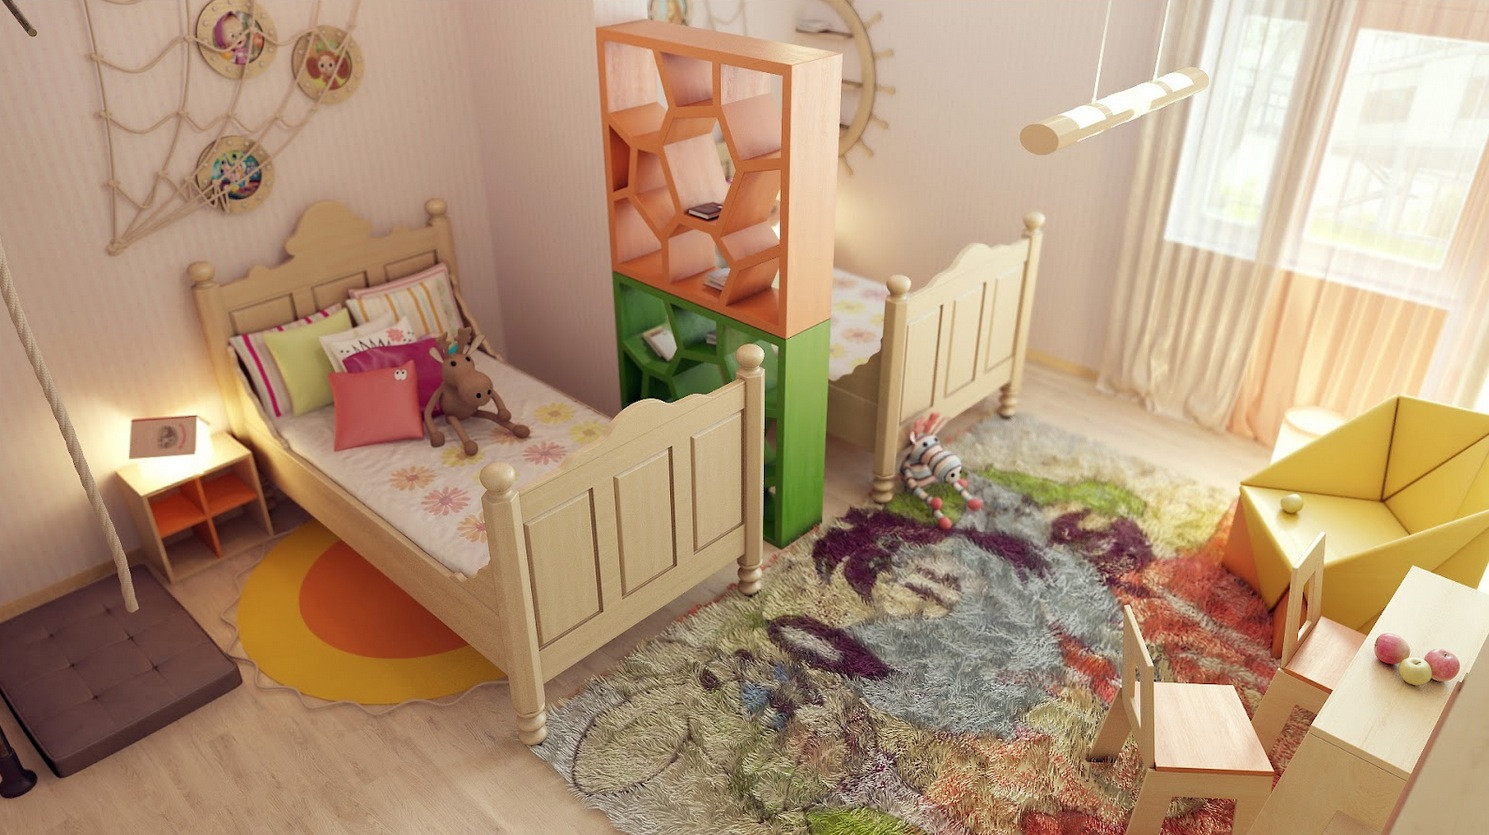 Best ideas about Kids Room Devider . Save or Pin Precious Interior Detailing Now.